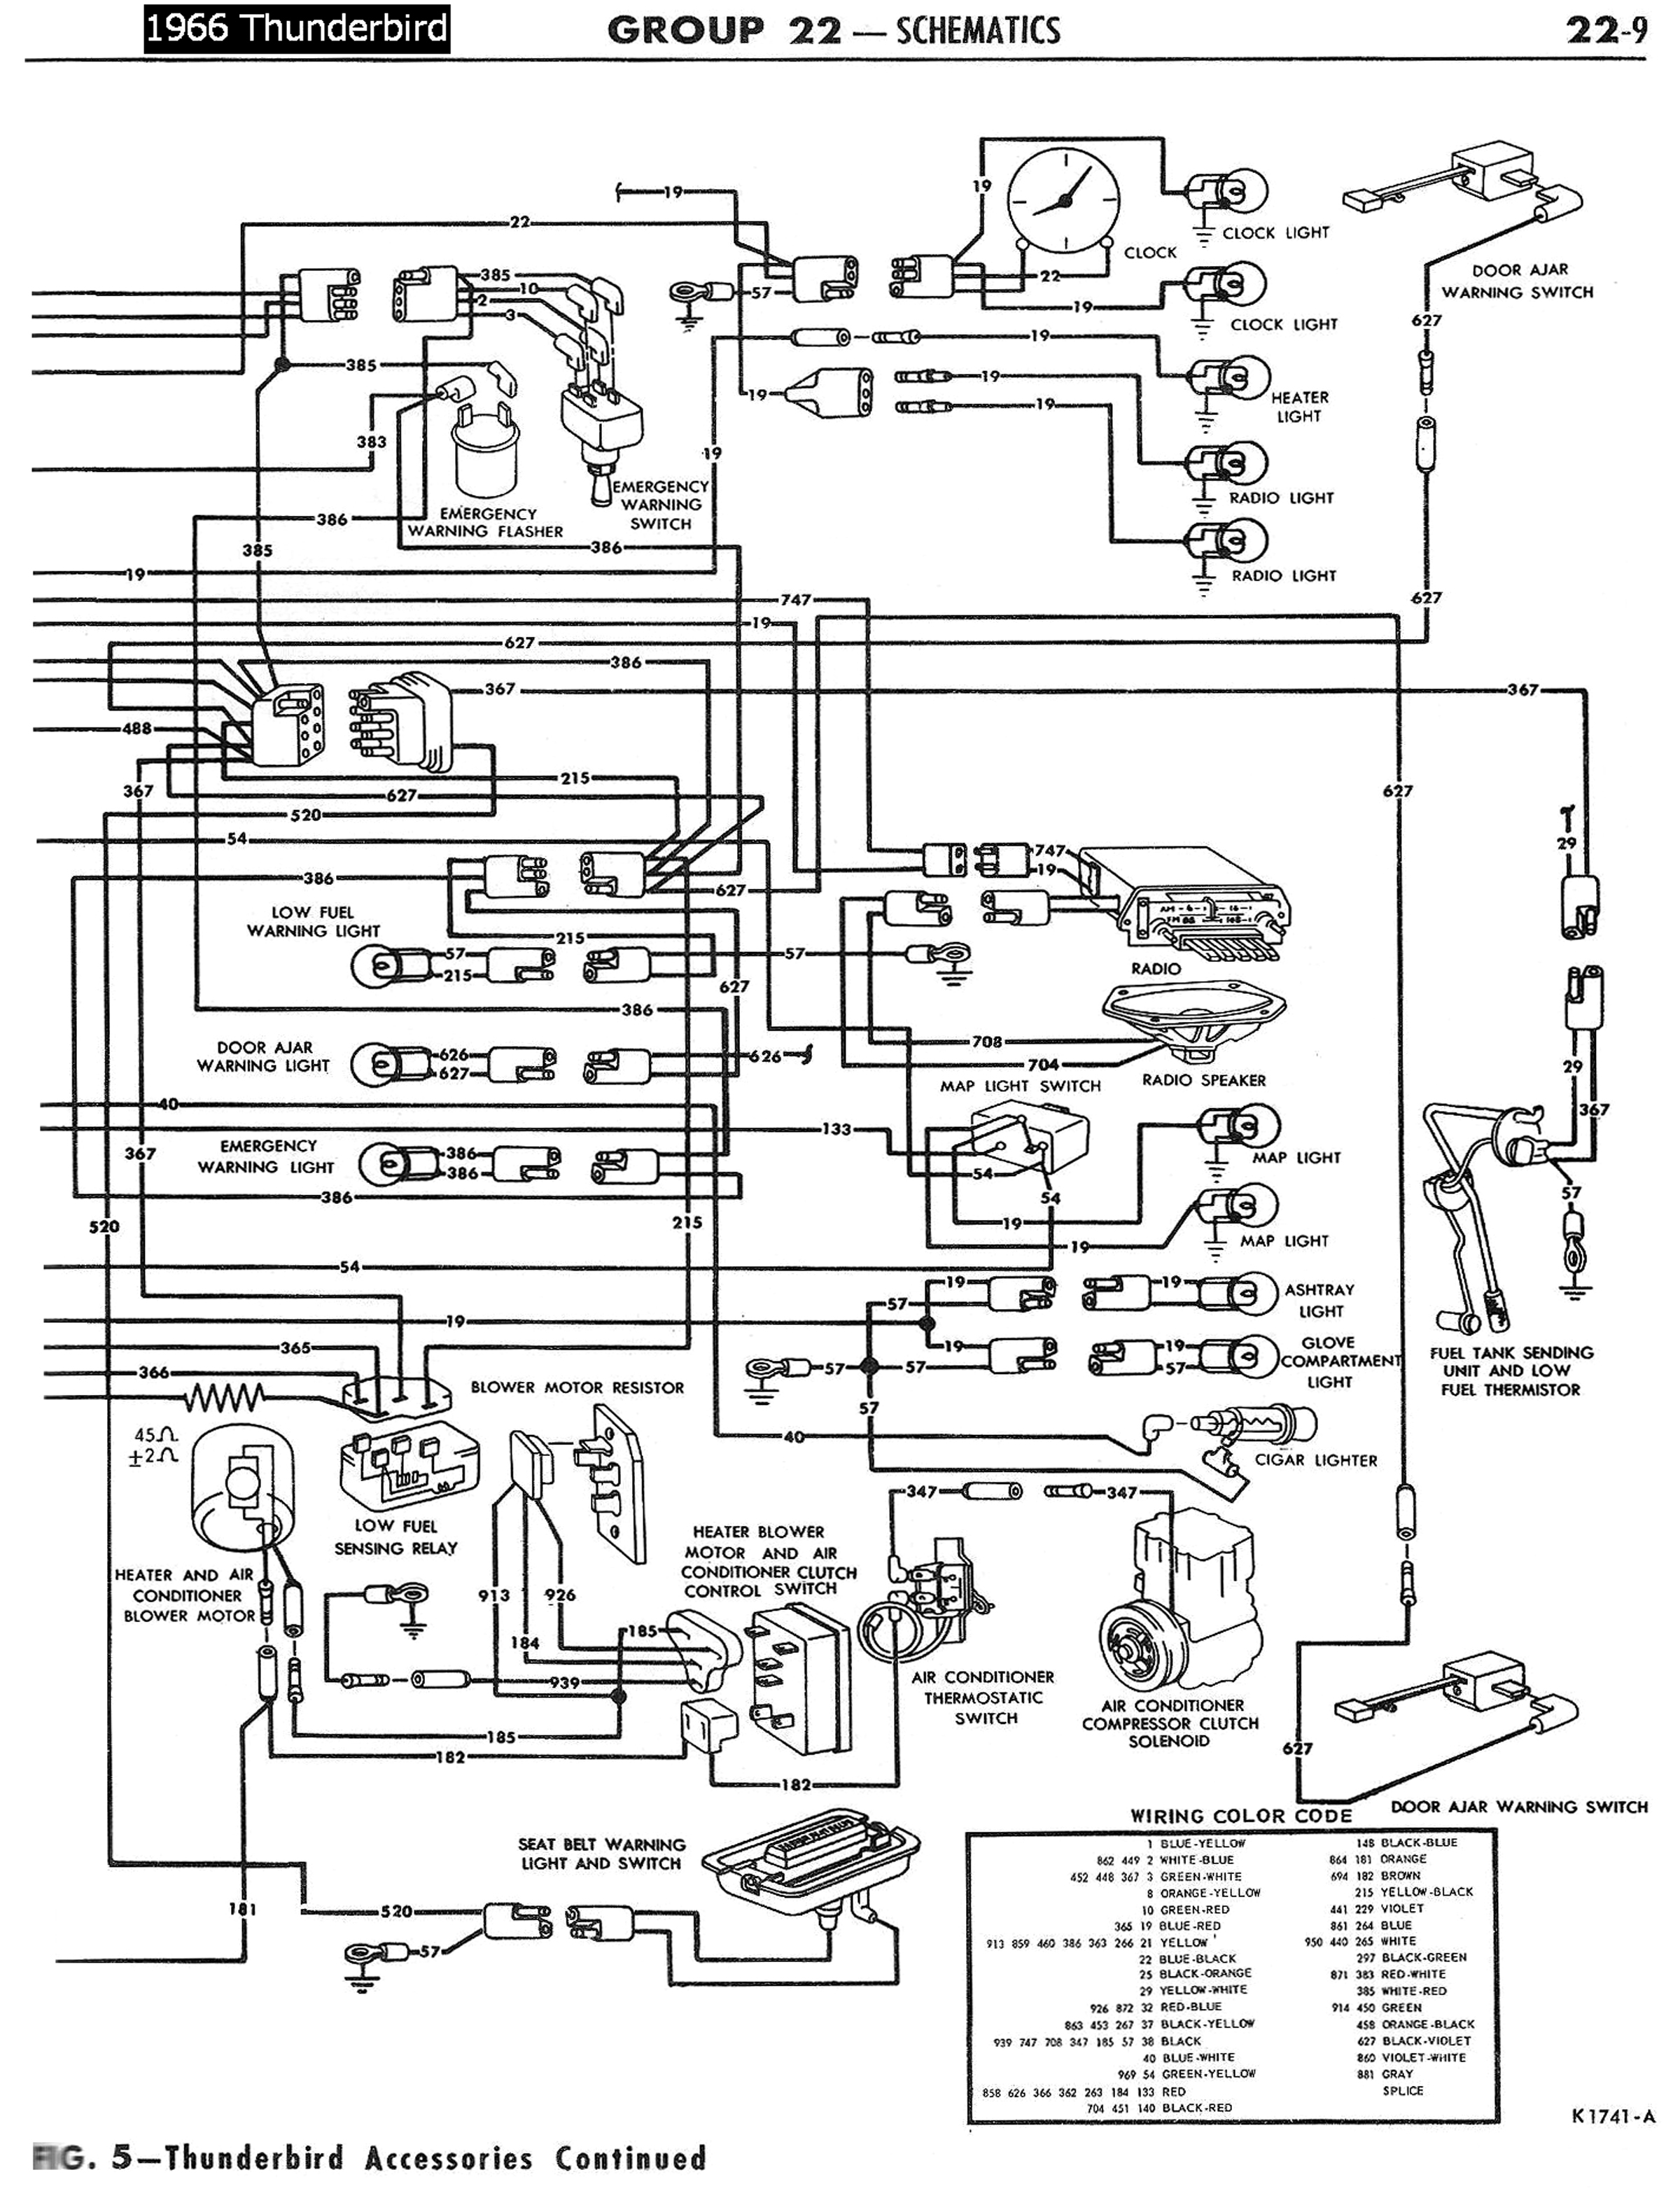 Wiring Diagram For 1966 Ford Ltd, Wiring, Free Engine